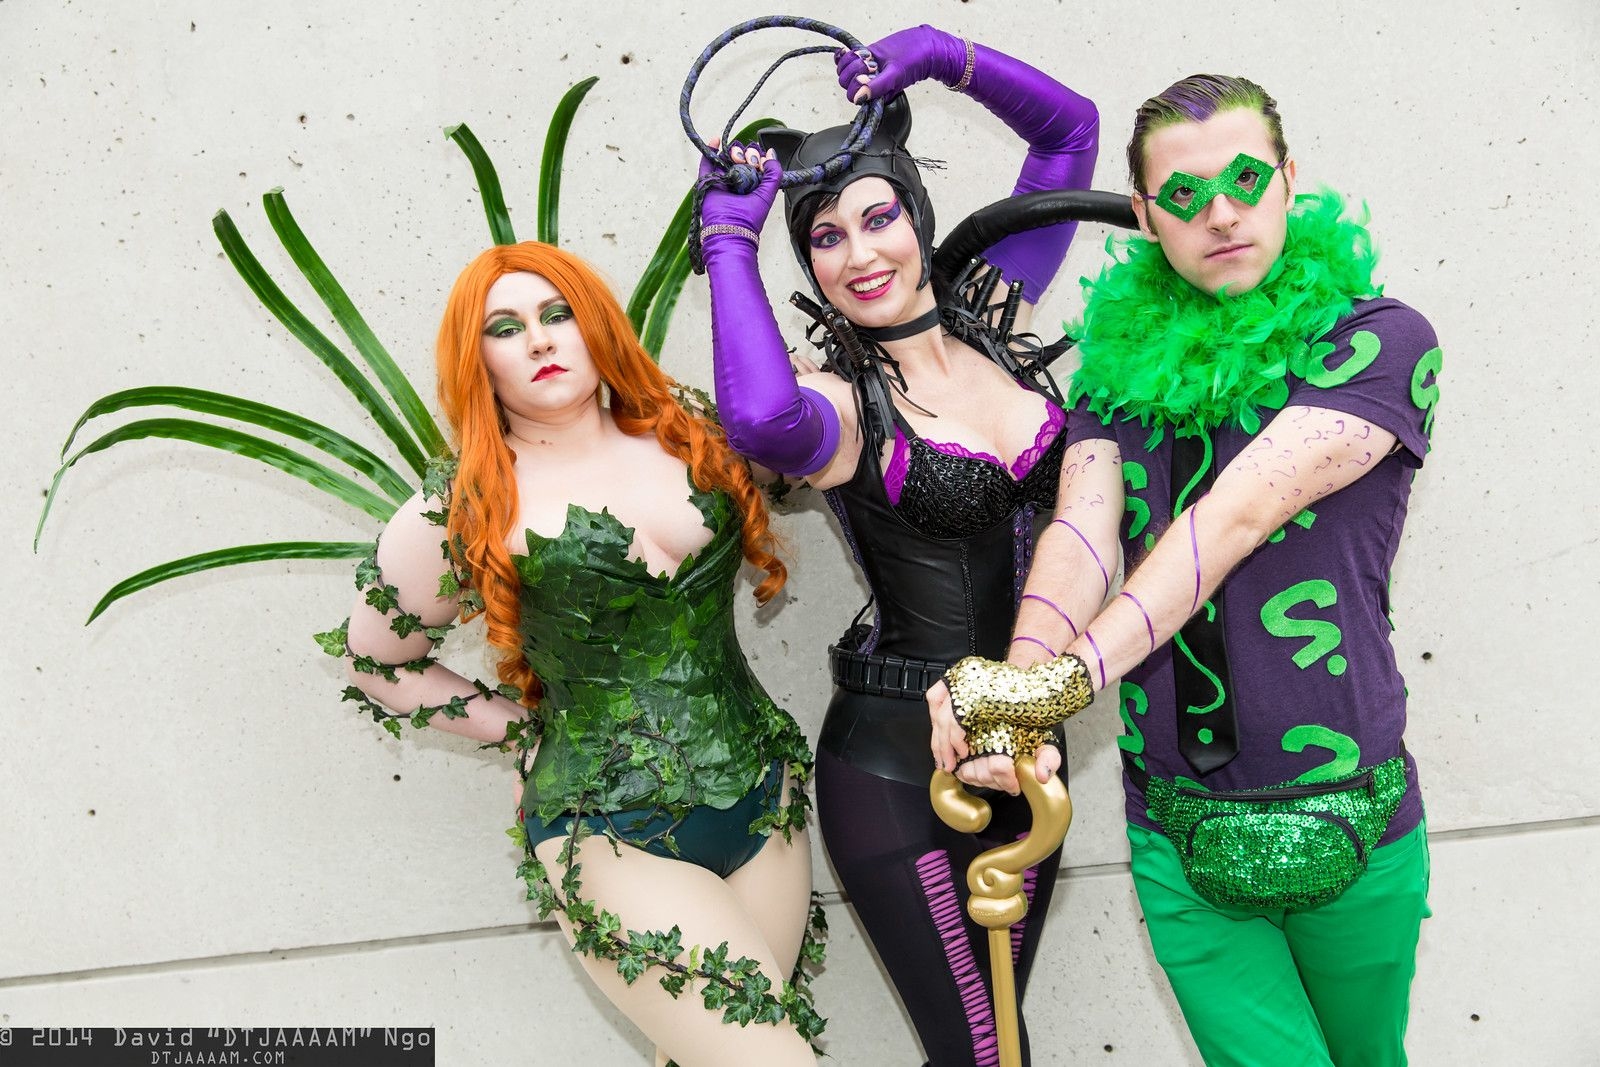 Poison Ivy, Catwoman, and Riddler #NYCC2014 #DTJAAAAM